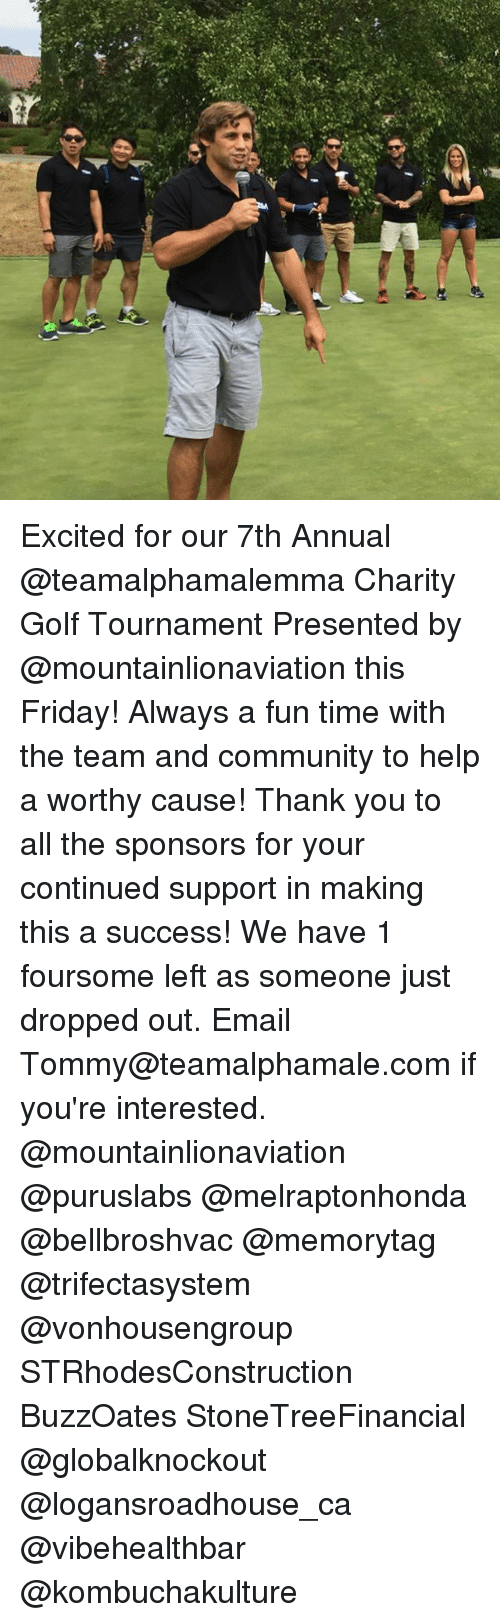 annuale: Excited for our 7th Annual @teamalphamalemma Charity Golf Tournament Presented by @mountainlionaviation this Friday! Always a fun time with the team and community to help a worthy cause! Thank you to all the sponsors for your continued support in making this a success! We have 1 foursome left as someone just dropped out. Email Tommy@teamalphamale.com if you're interested. @mountainlionaviation @puruslabs @melraptonhonda @bellbroshvac @memorytag @trifectasystem @vonhousengroup STRhodesConstruction BuzzOates StoneTreeFinancial @globalknockout @logansroadhouse_ca @vibehealthbar @kombuchakulture